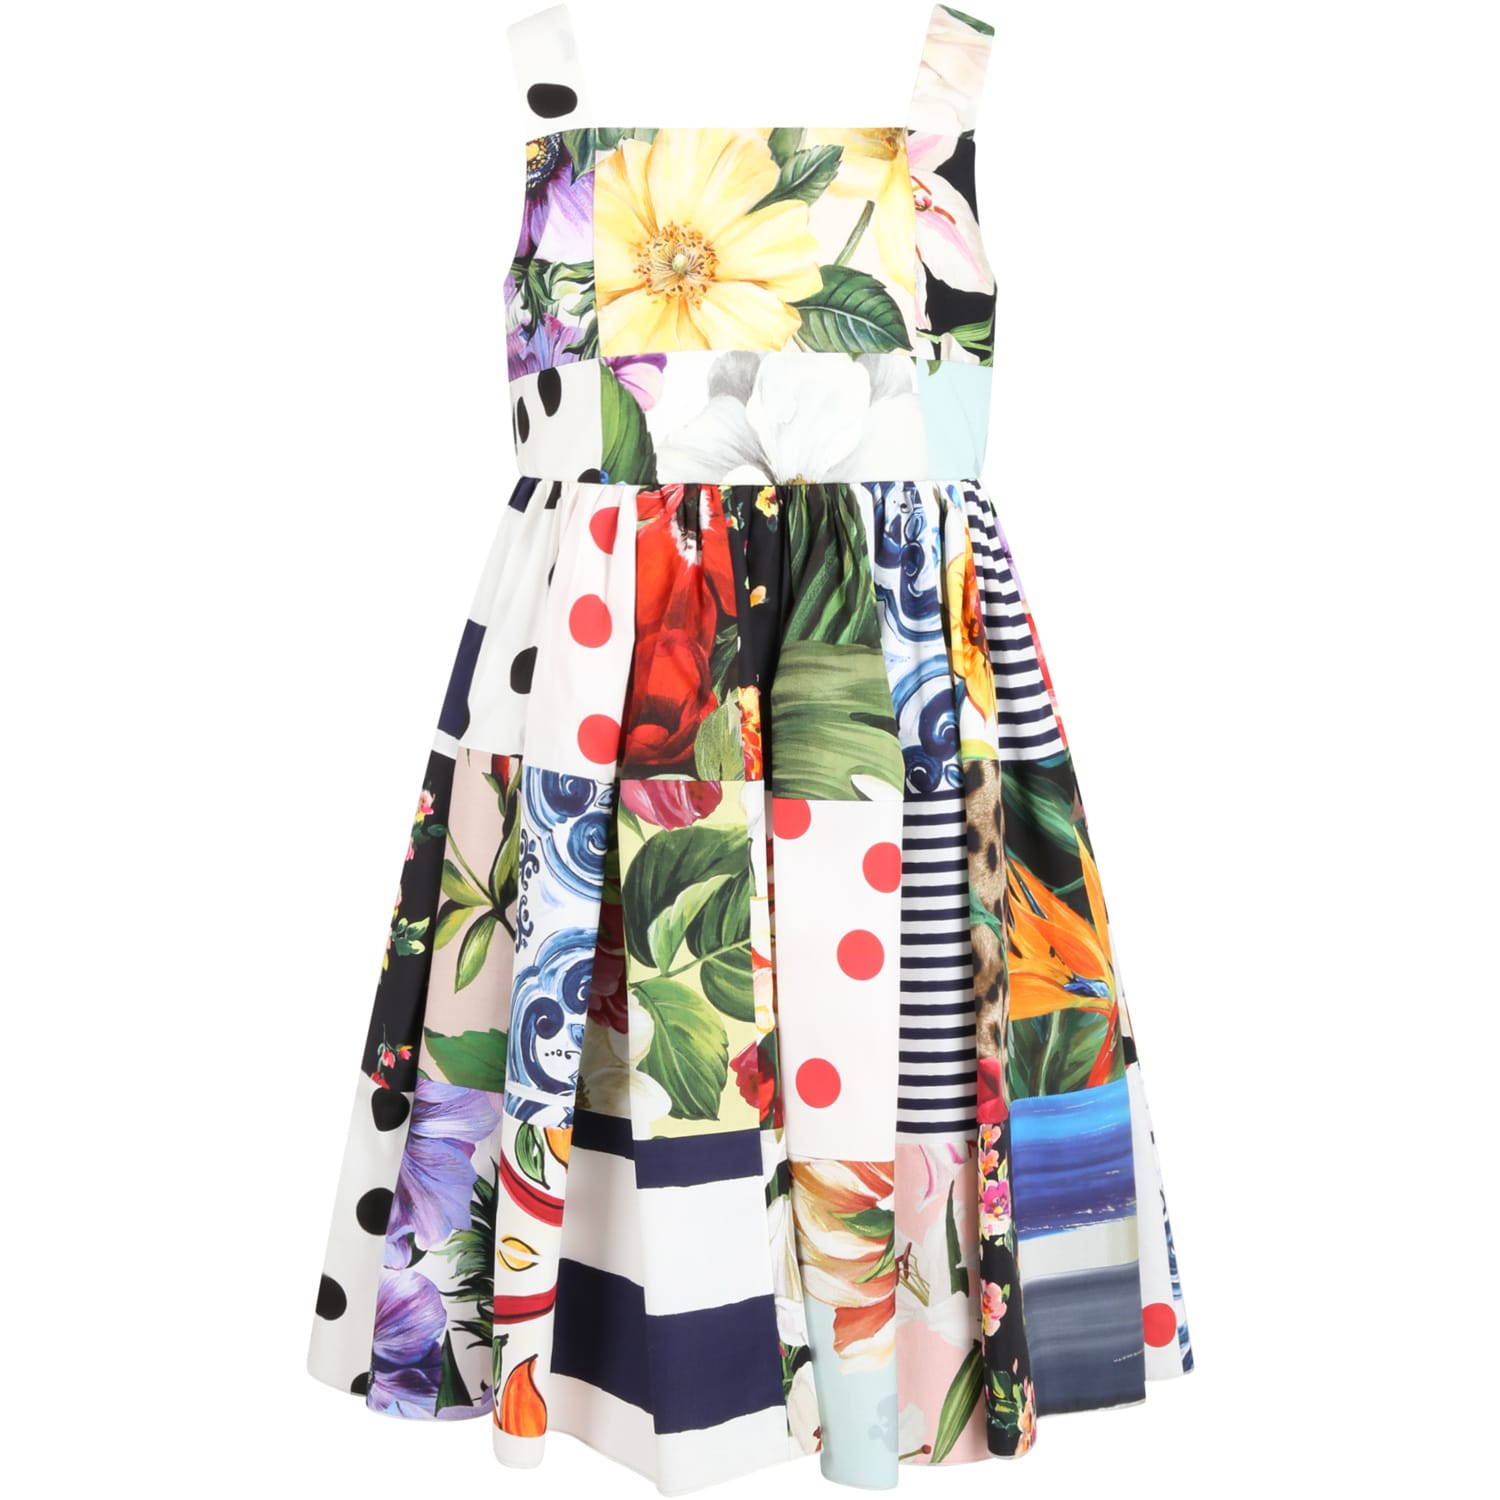 Buy Dolce & Gabbana Multicolor Dress For Girl With Iconic Prints online, shop Dolce & Gabbana with free shipping